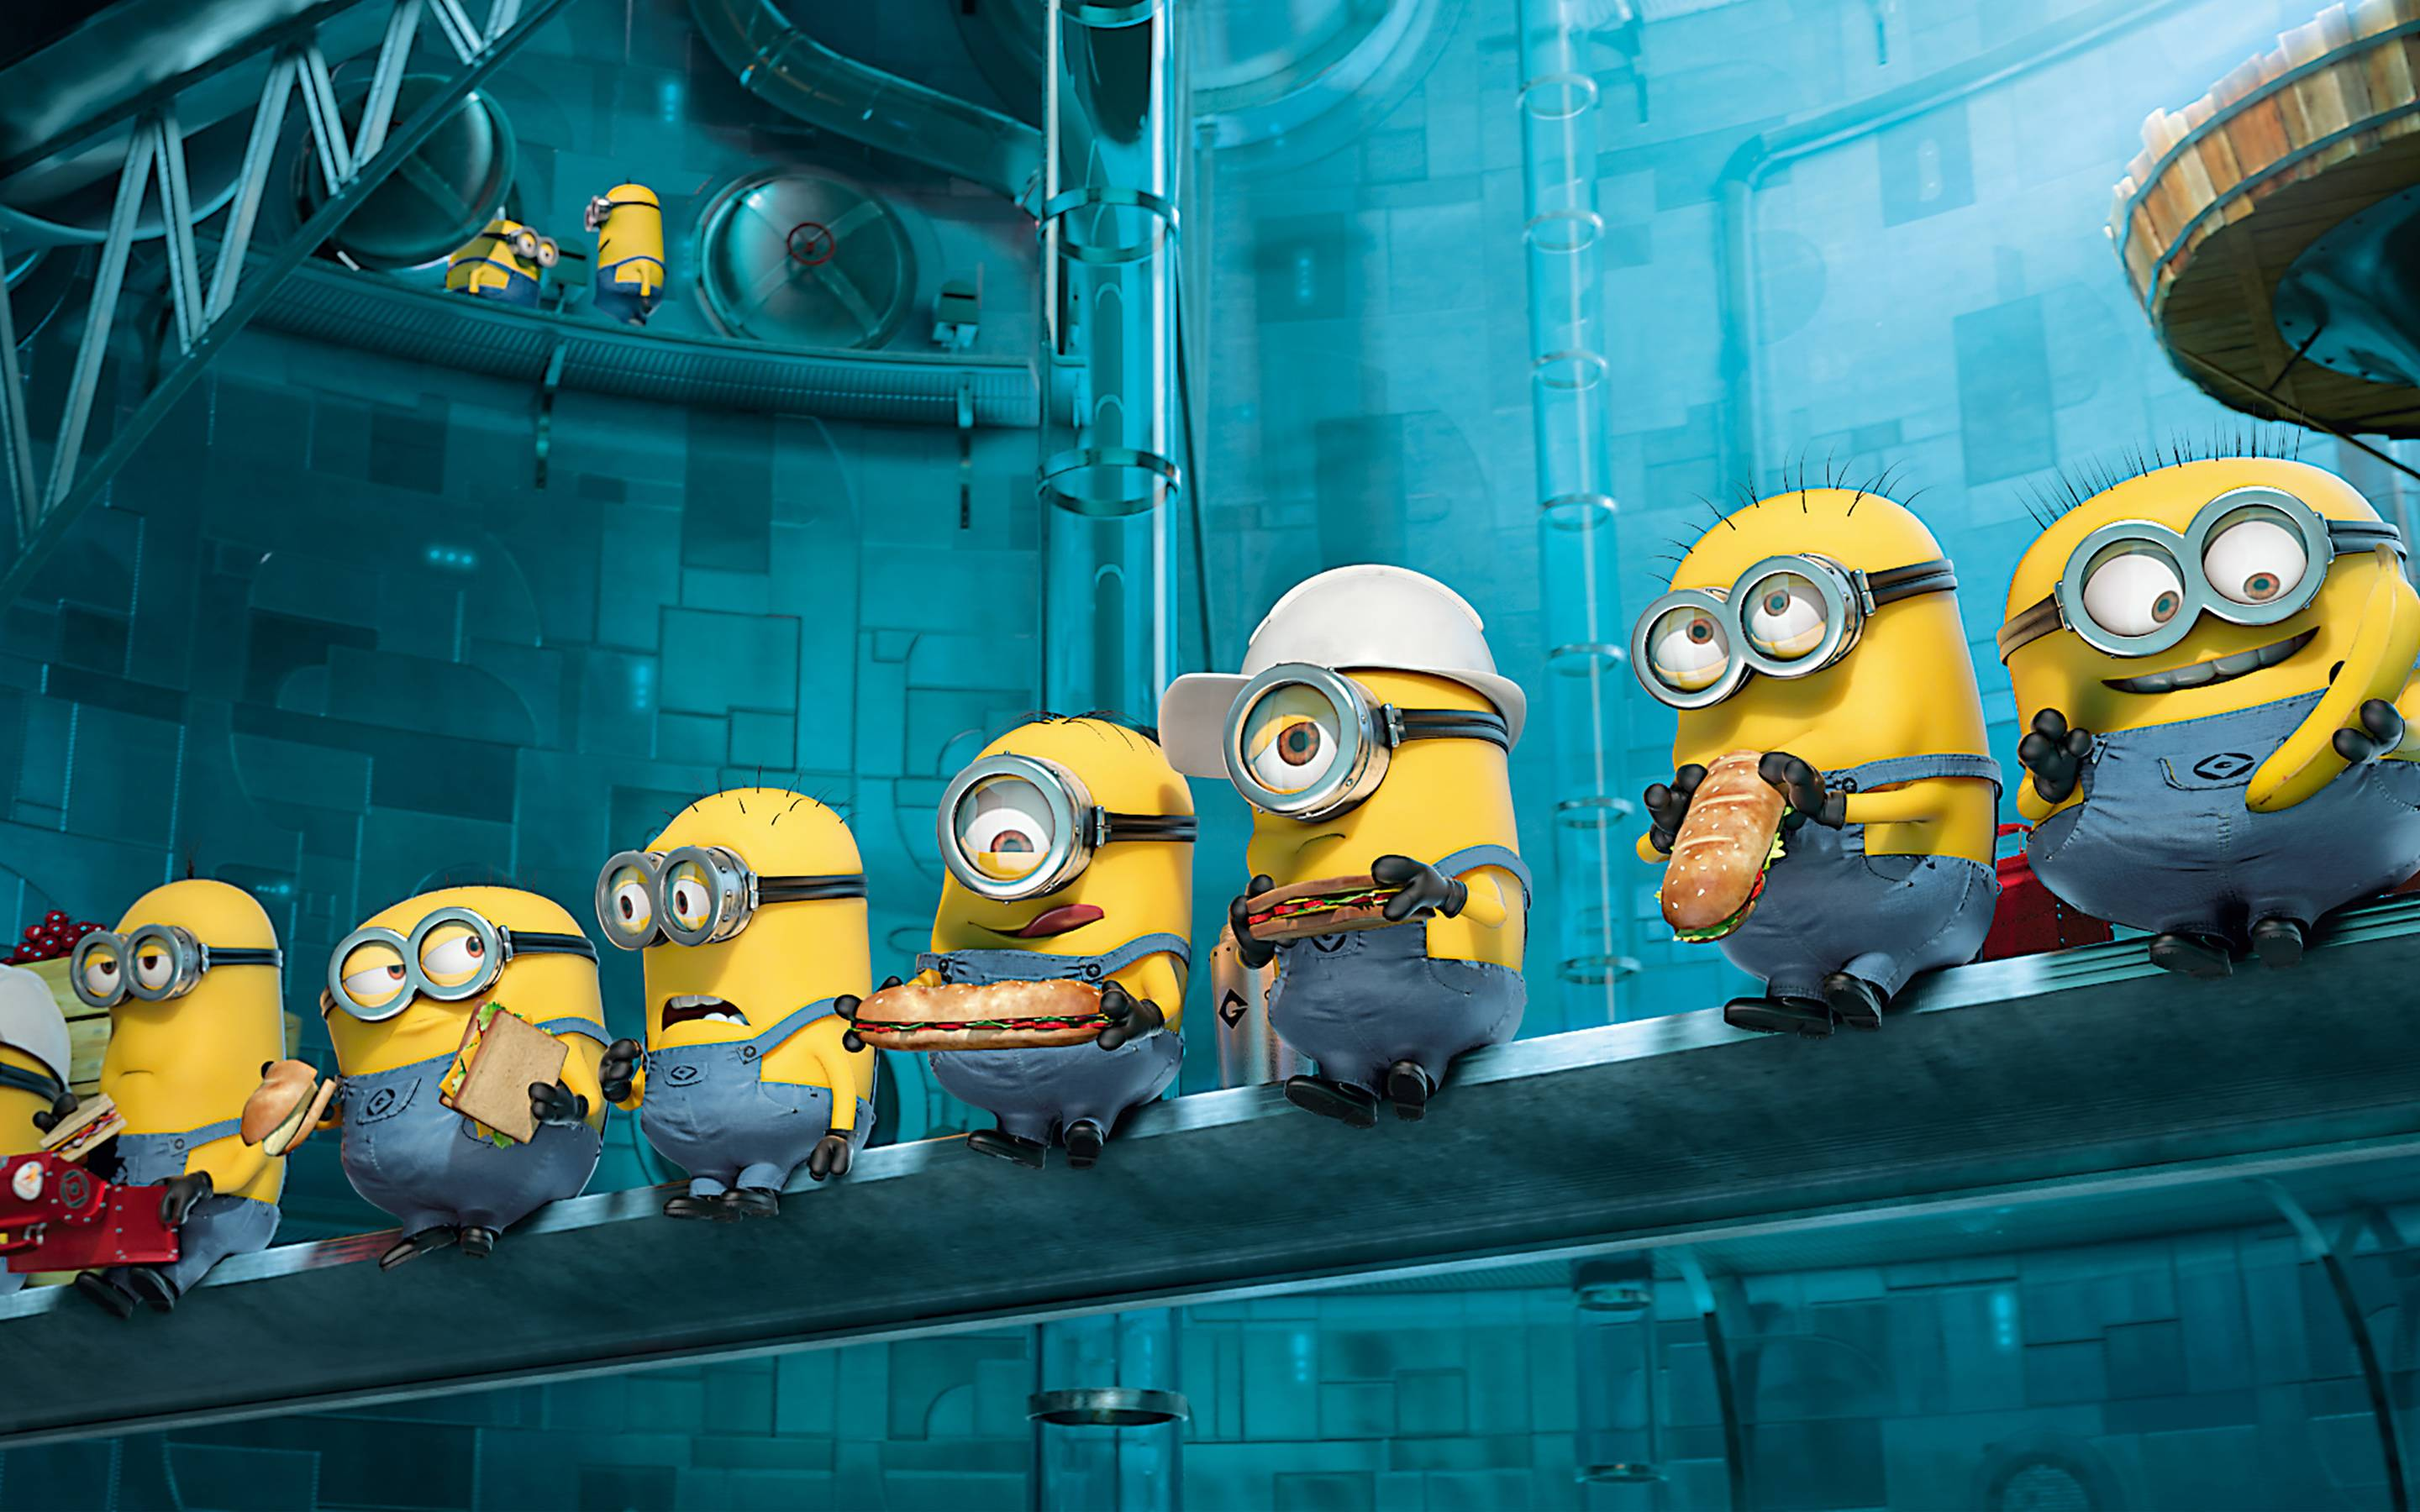 minion wallpapers - wallpaper cave